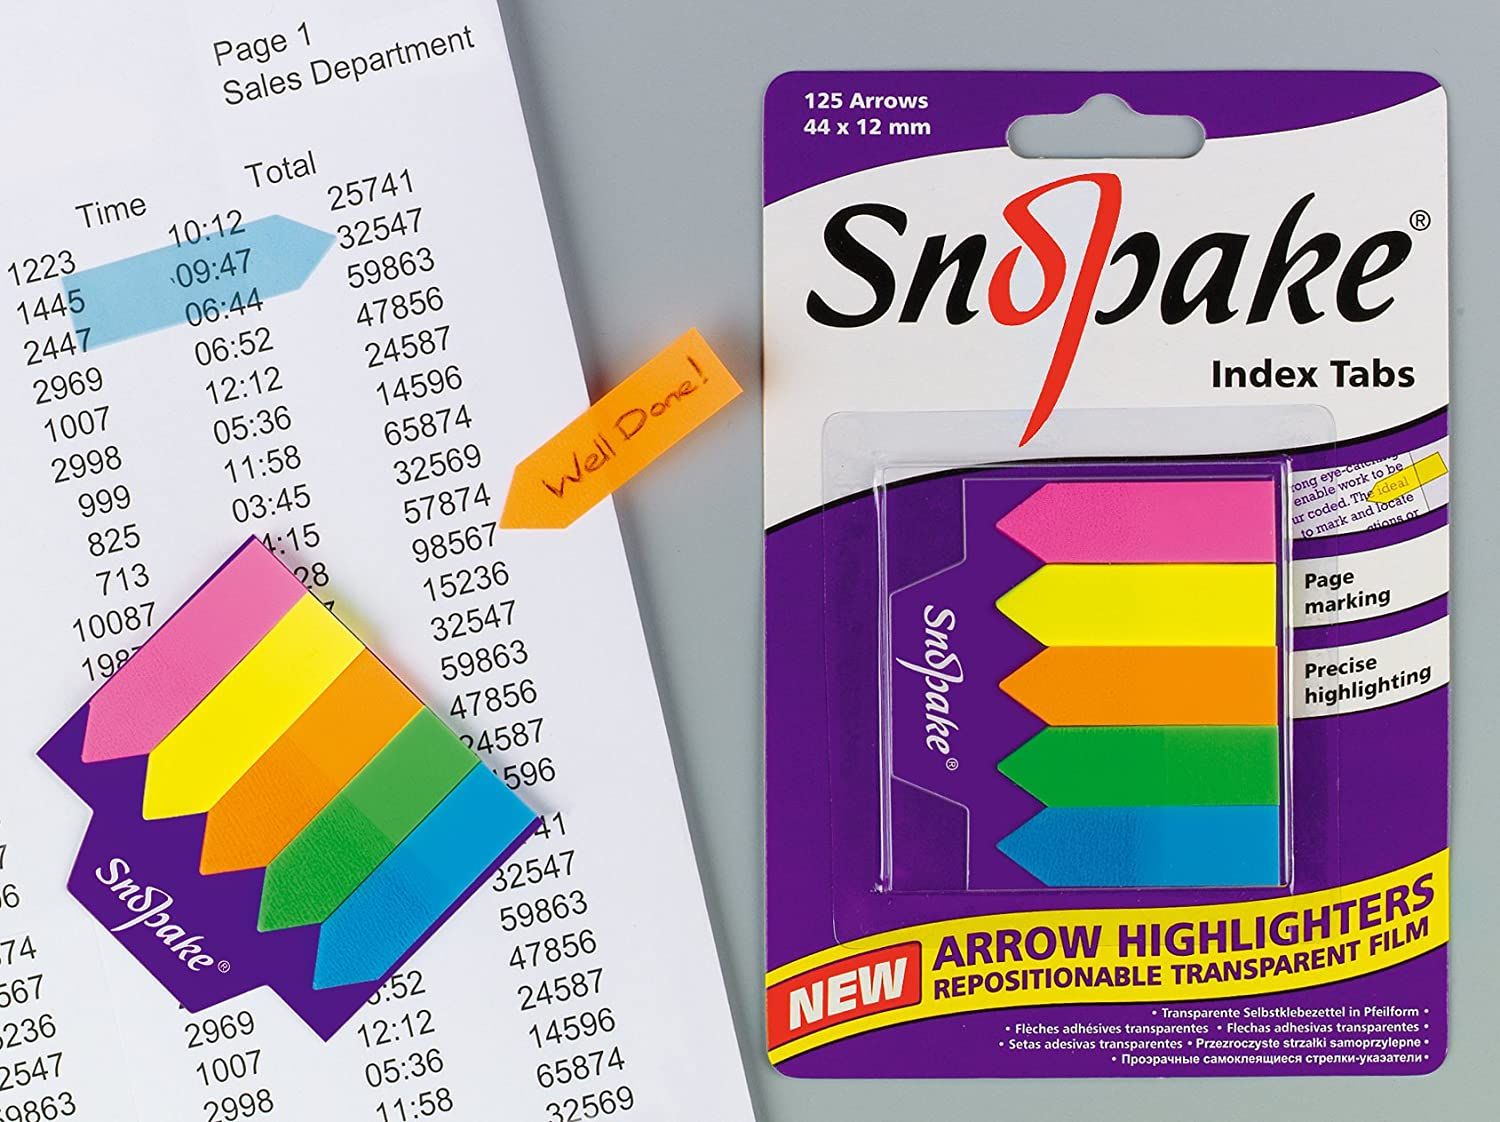 Snopake 44x12mm Index Tab Arrow Highlighter Pack of 12 Pieces Assorted Colours